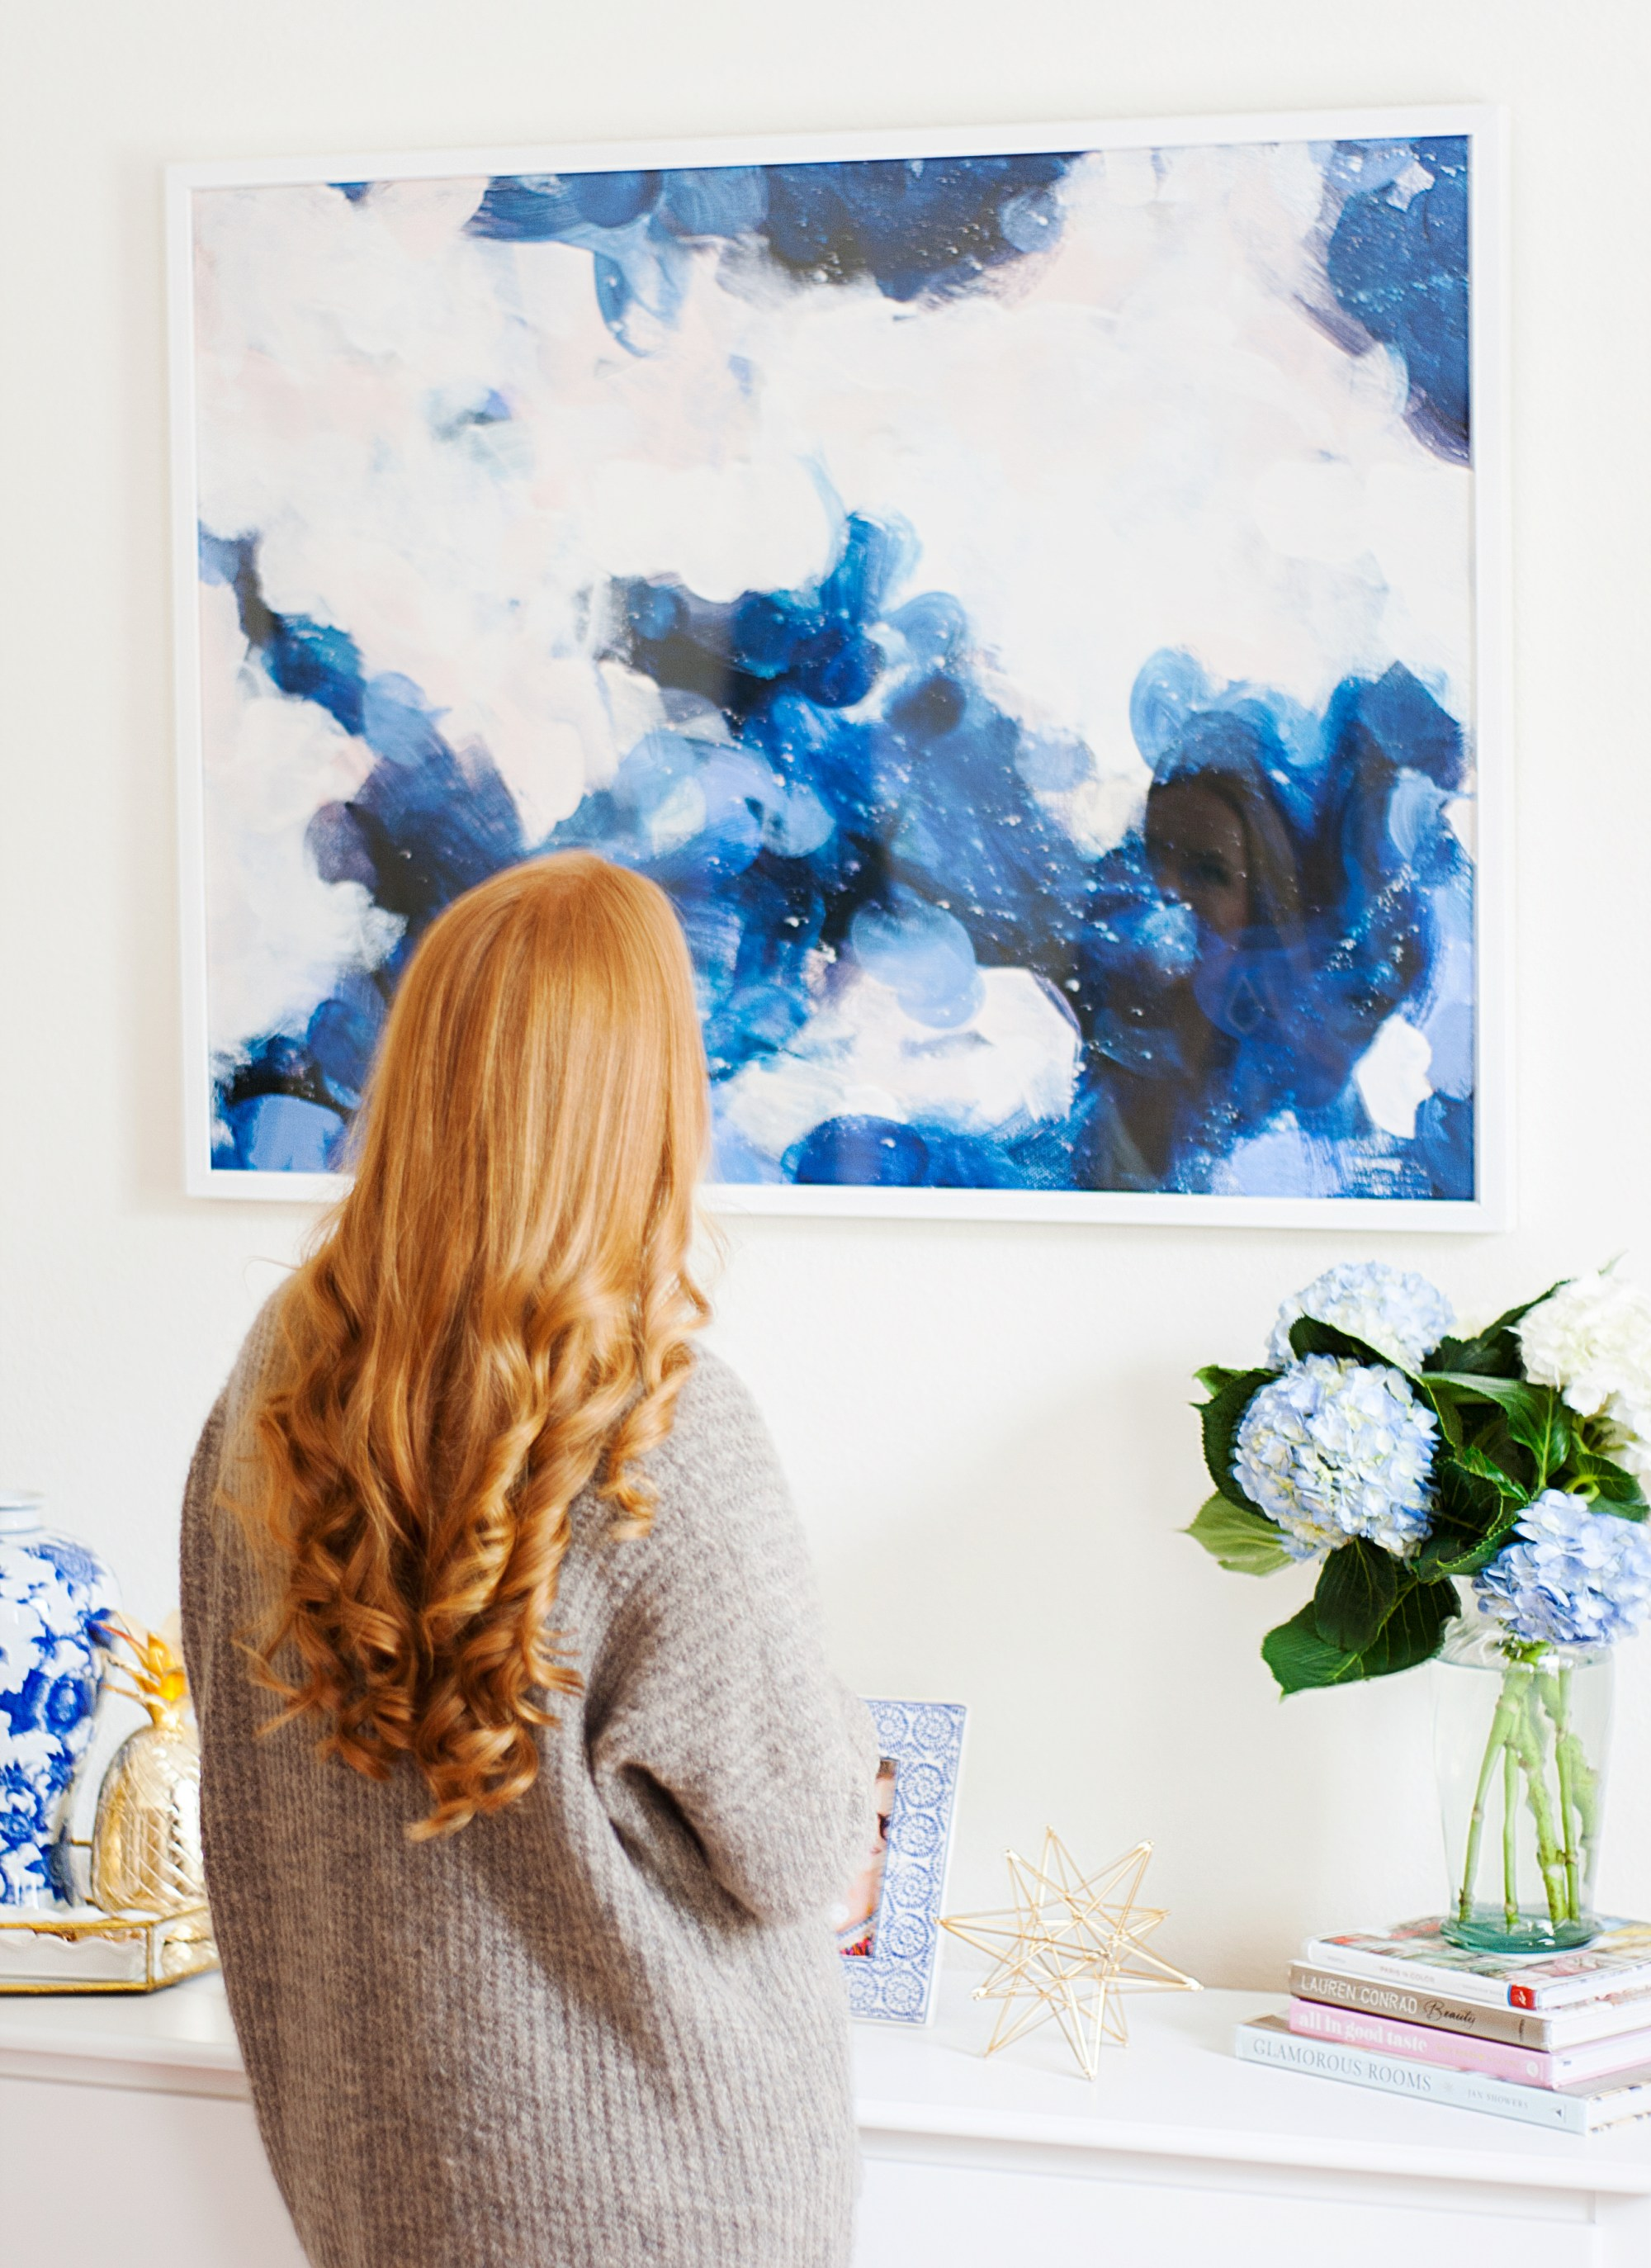 Large scale art print by Parima Studio in Oh What I See's bedroom update